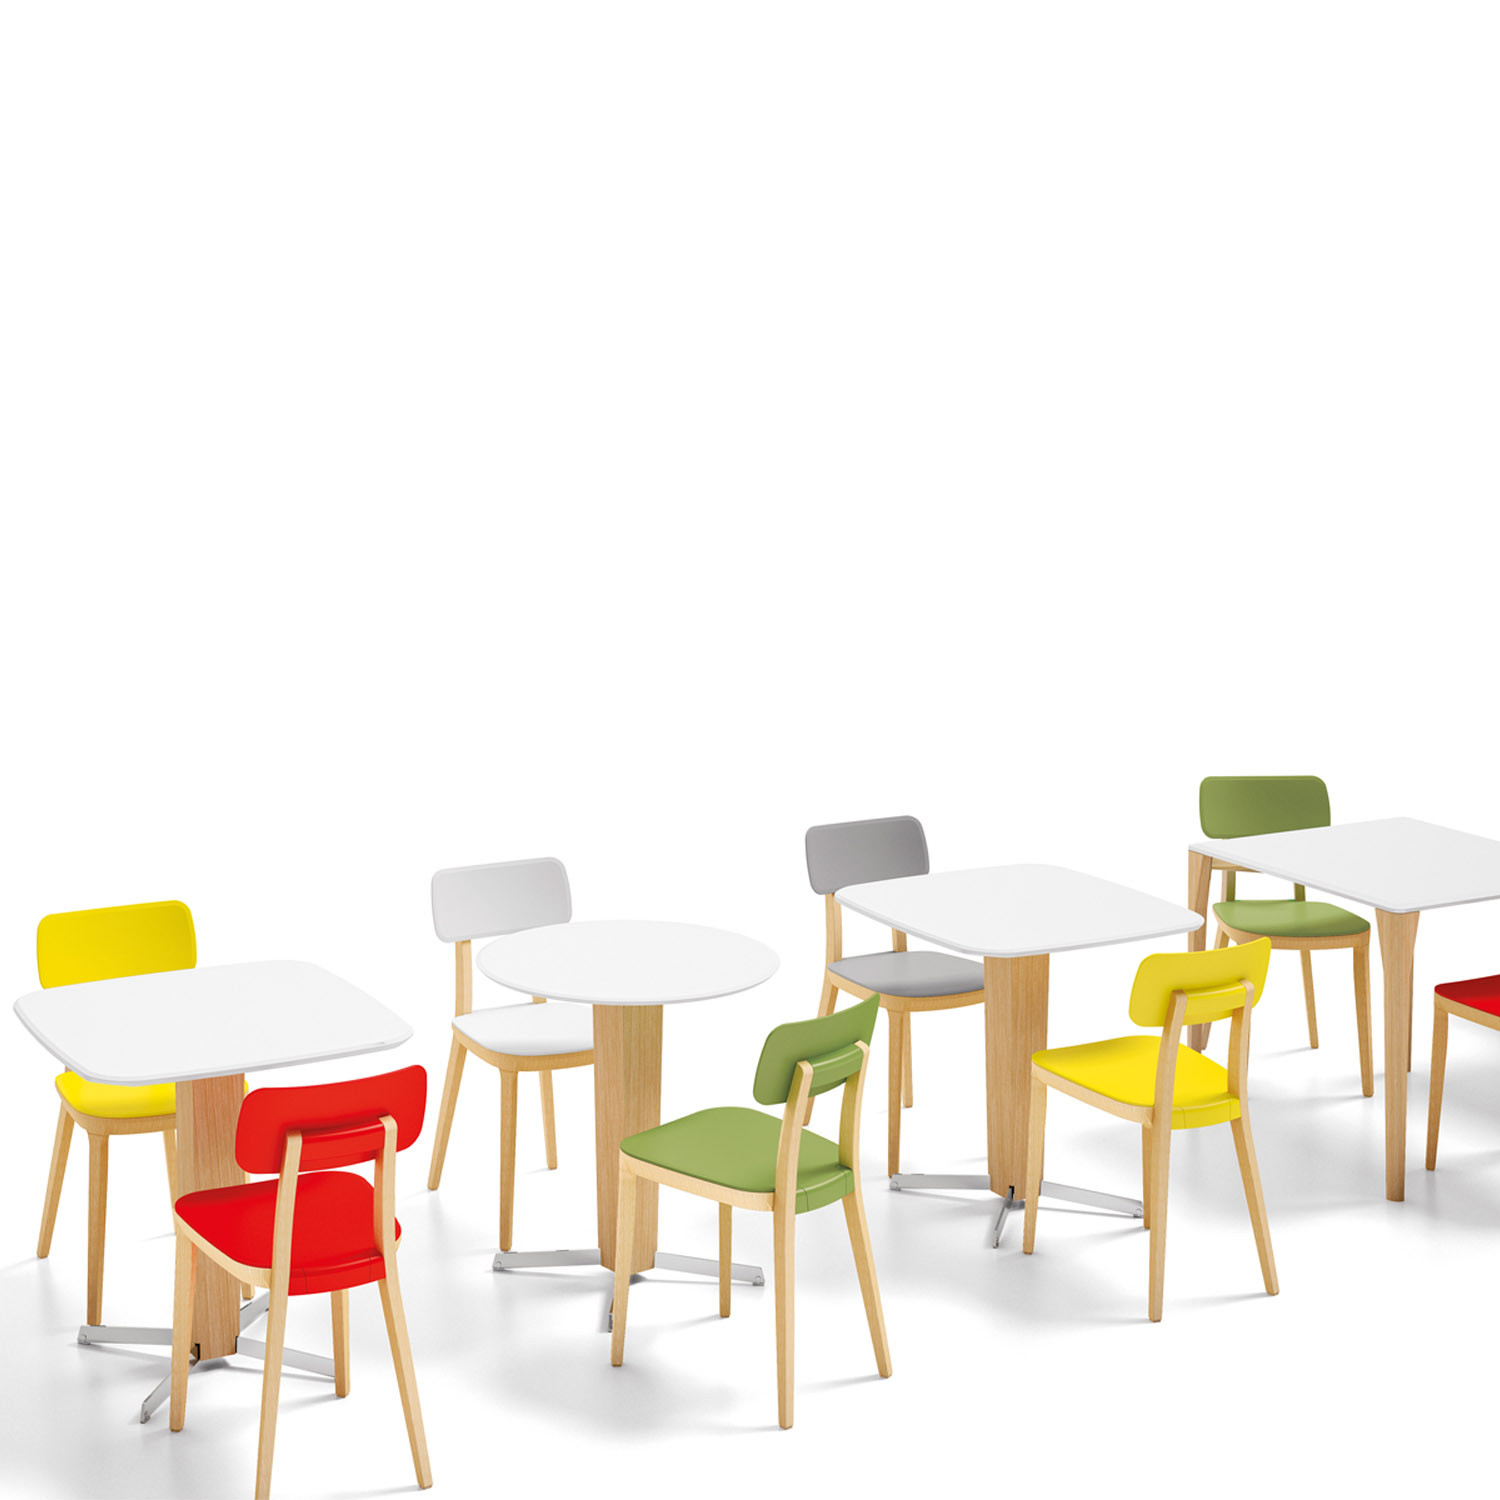 Retro Breakout Tables and Chairs